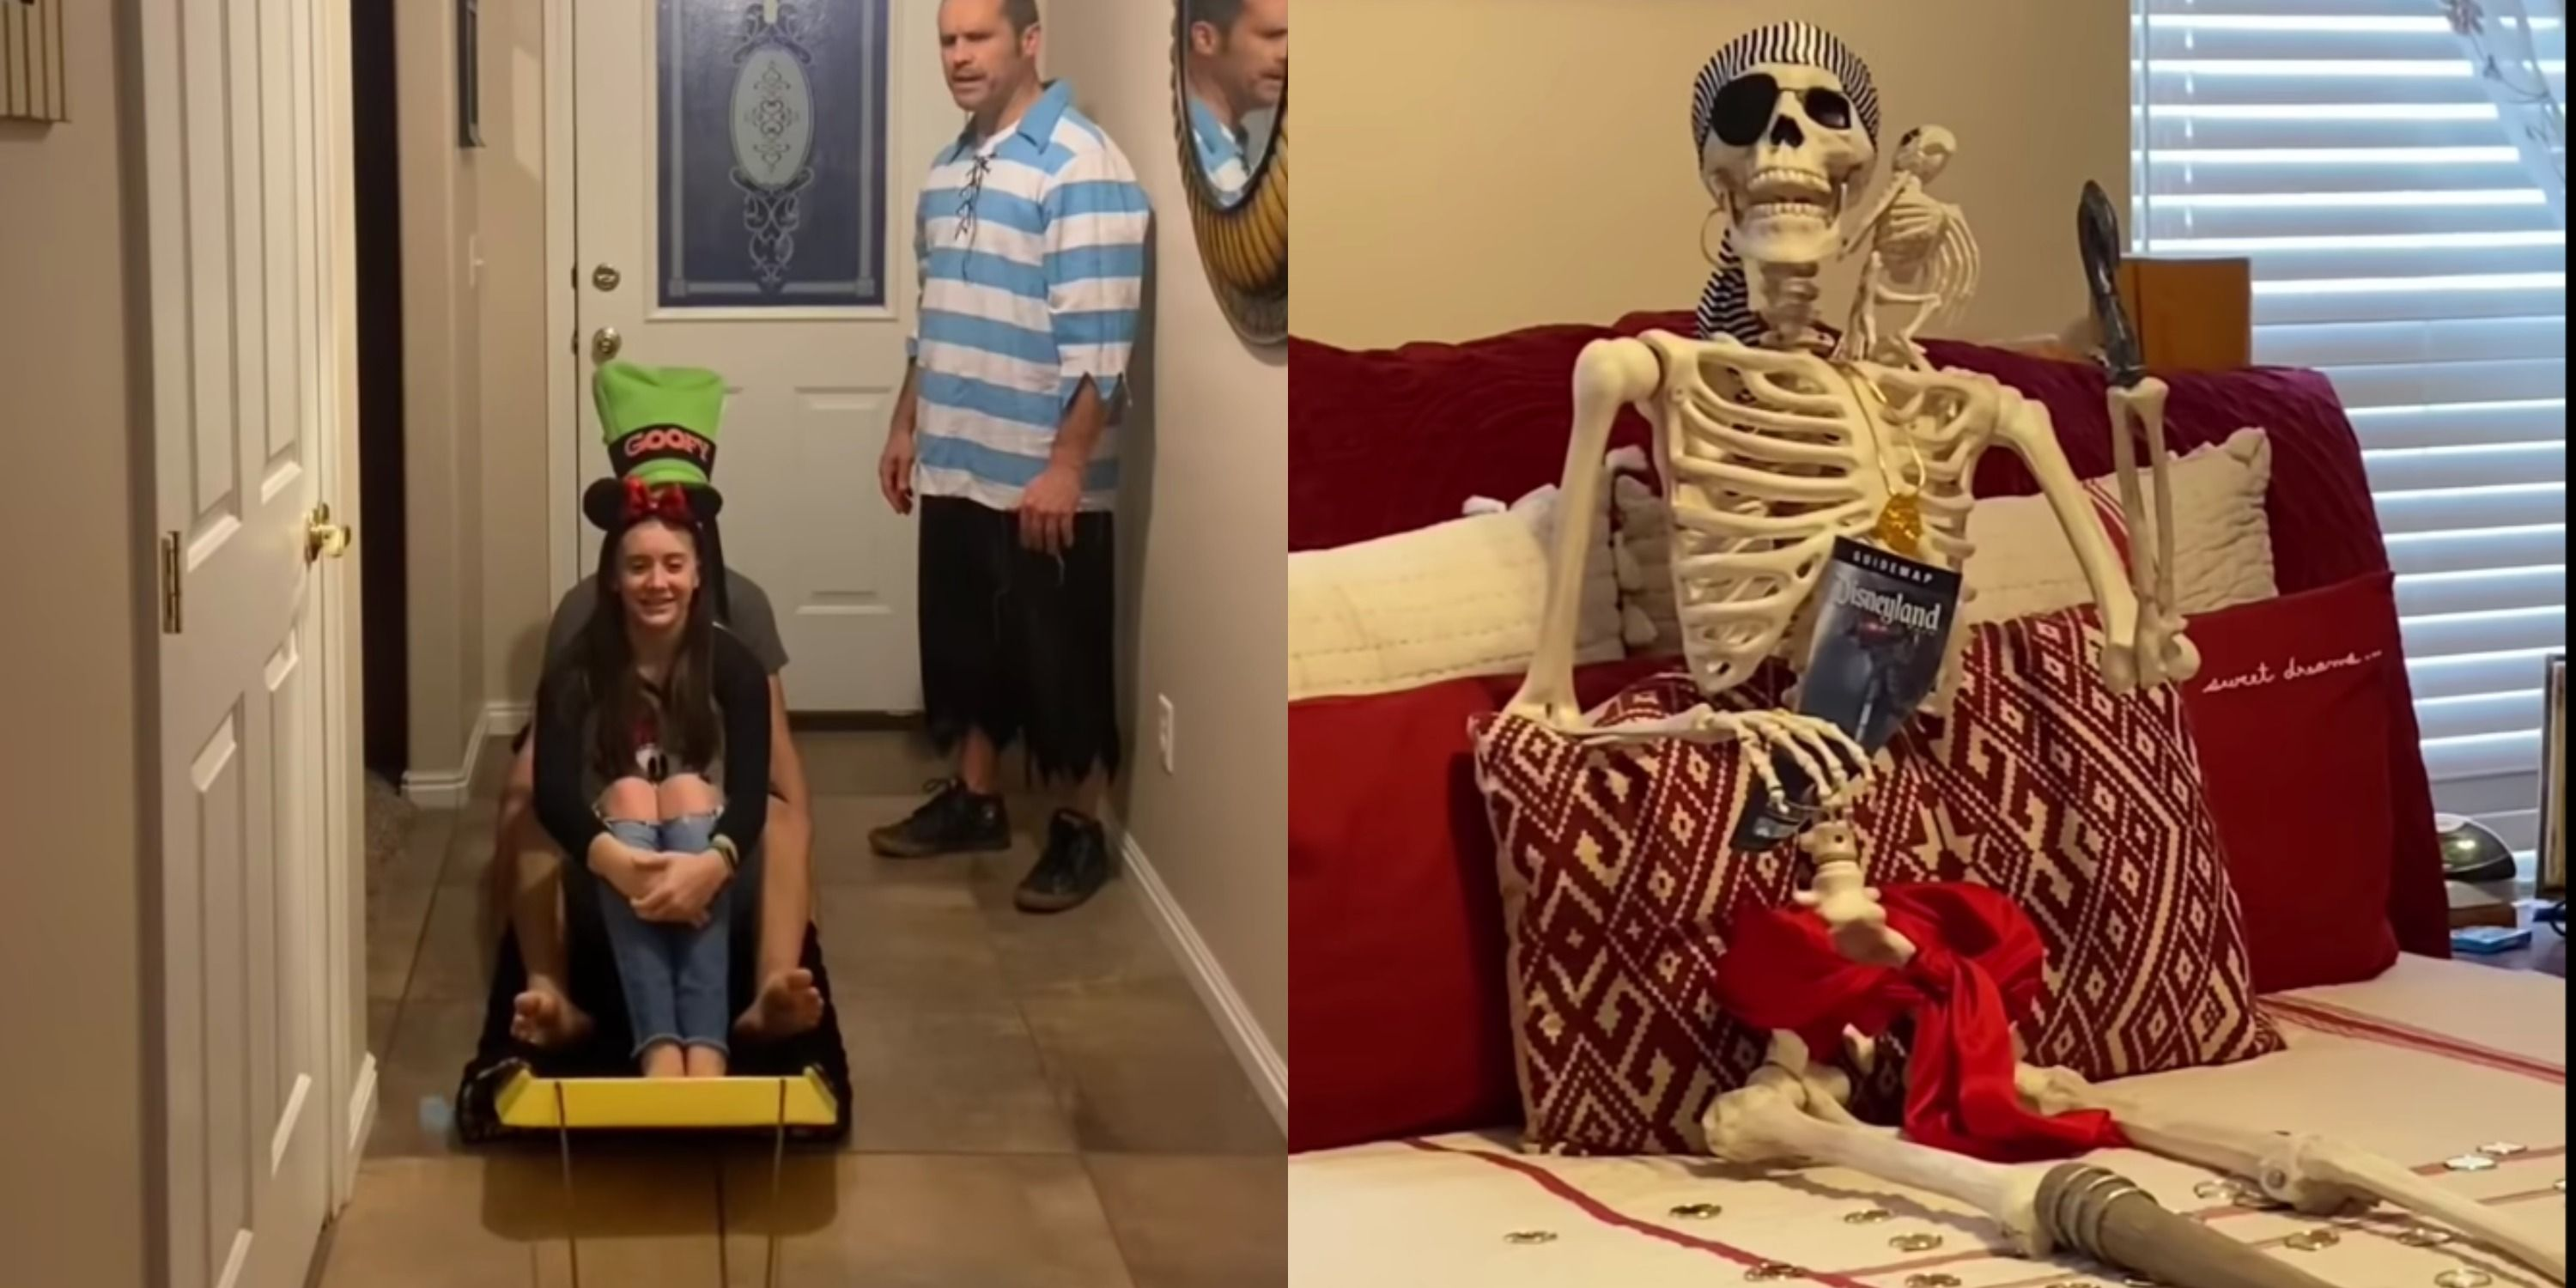 A Family Recreated Disney's Pirates Of The Caribbean Ride At Home